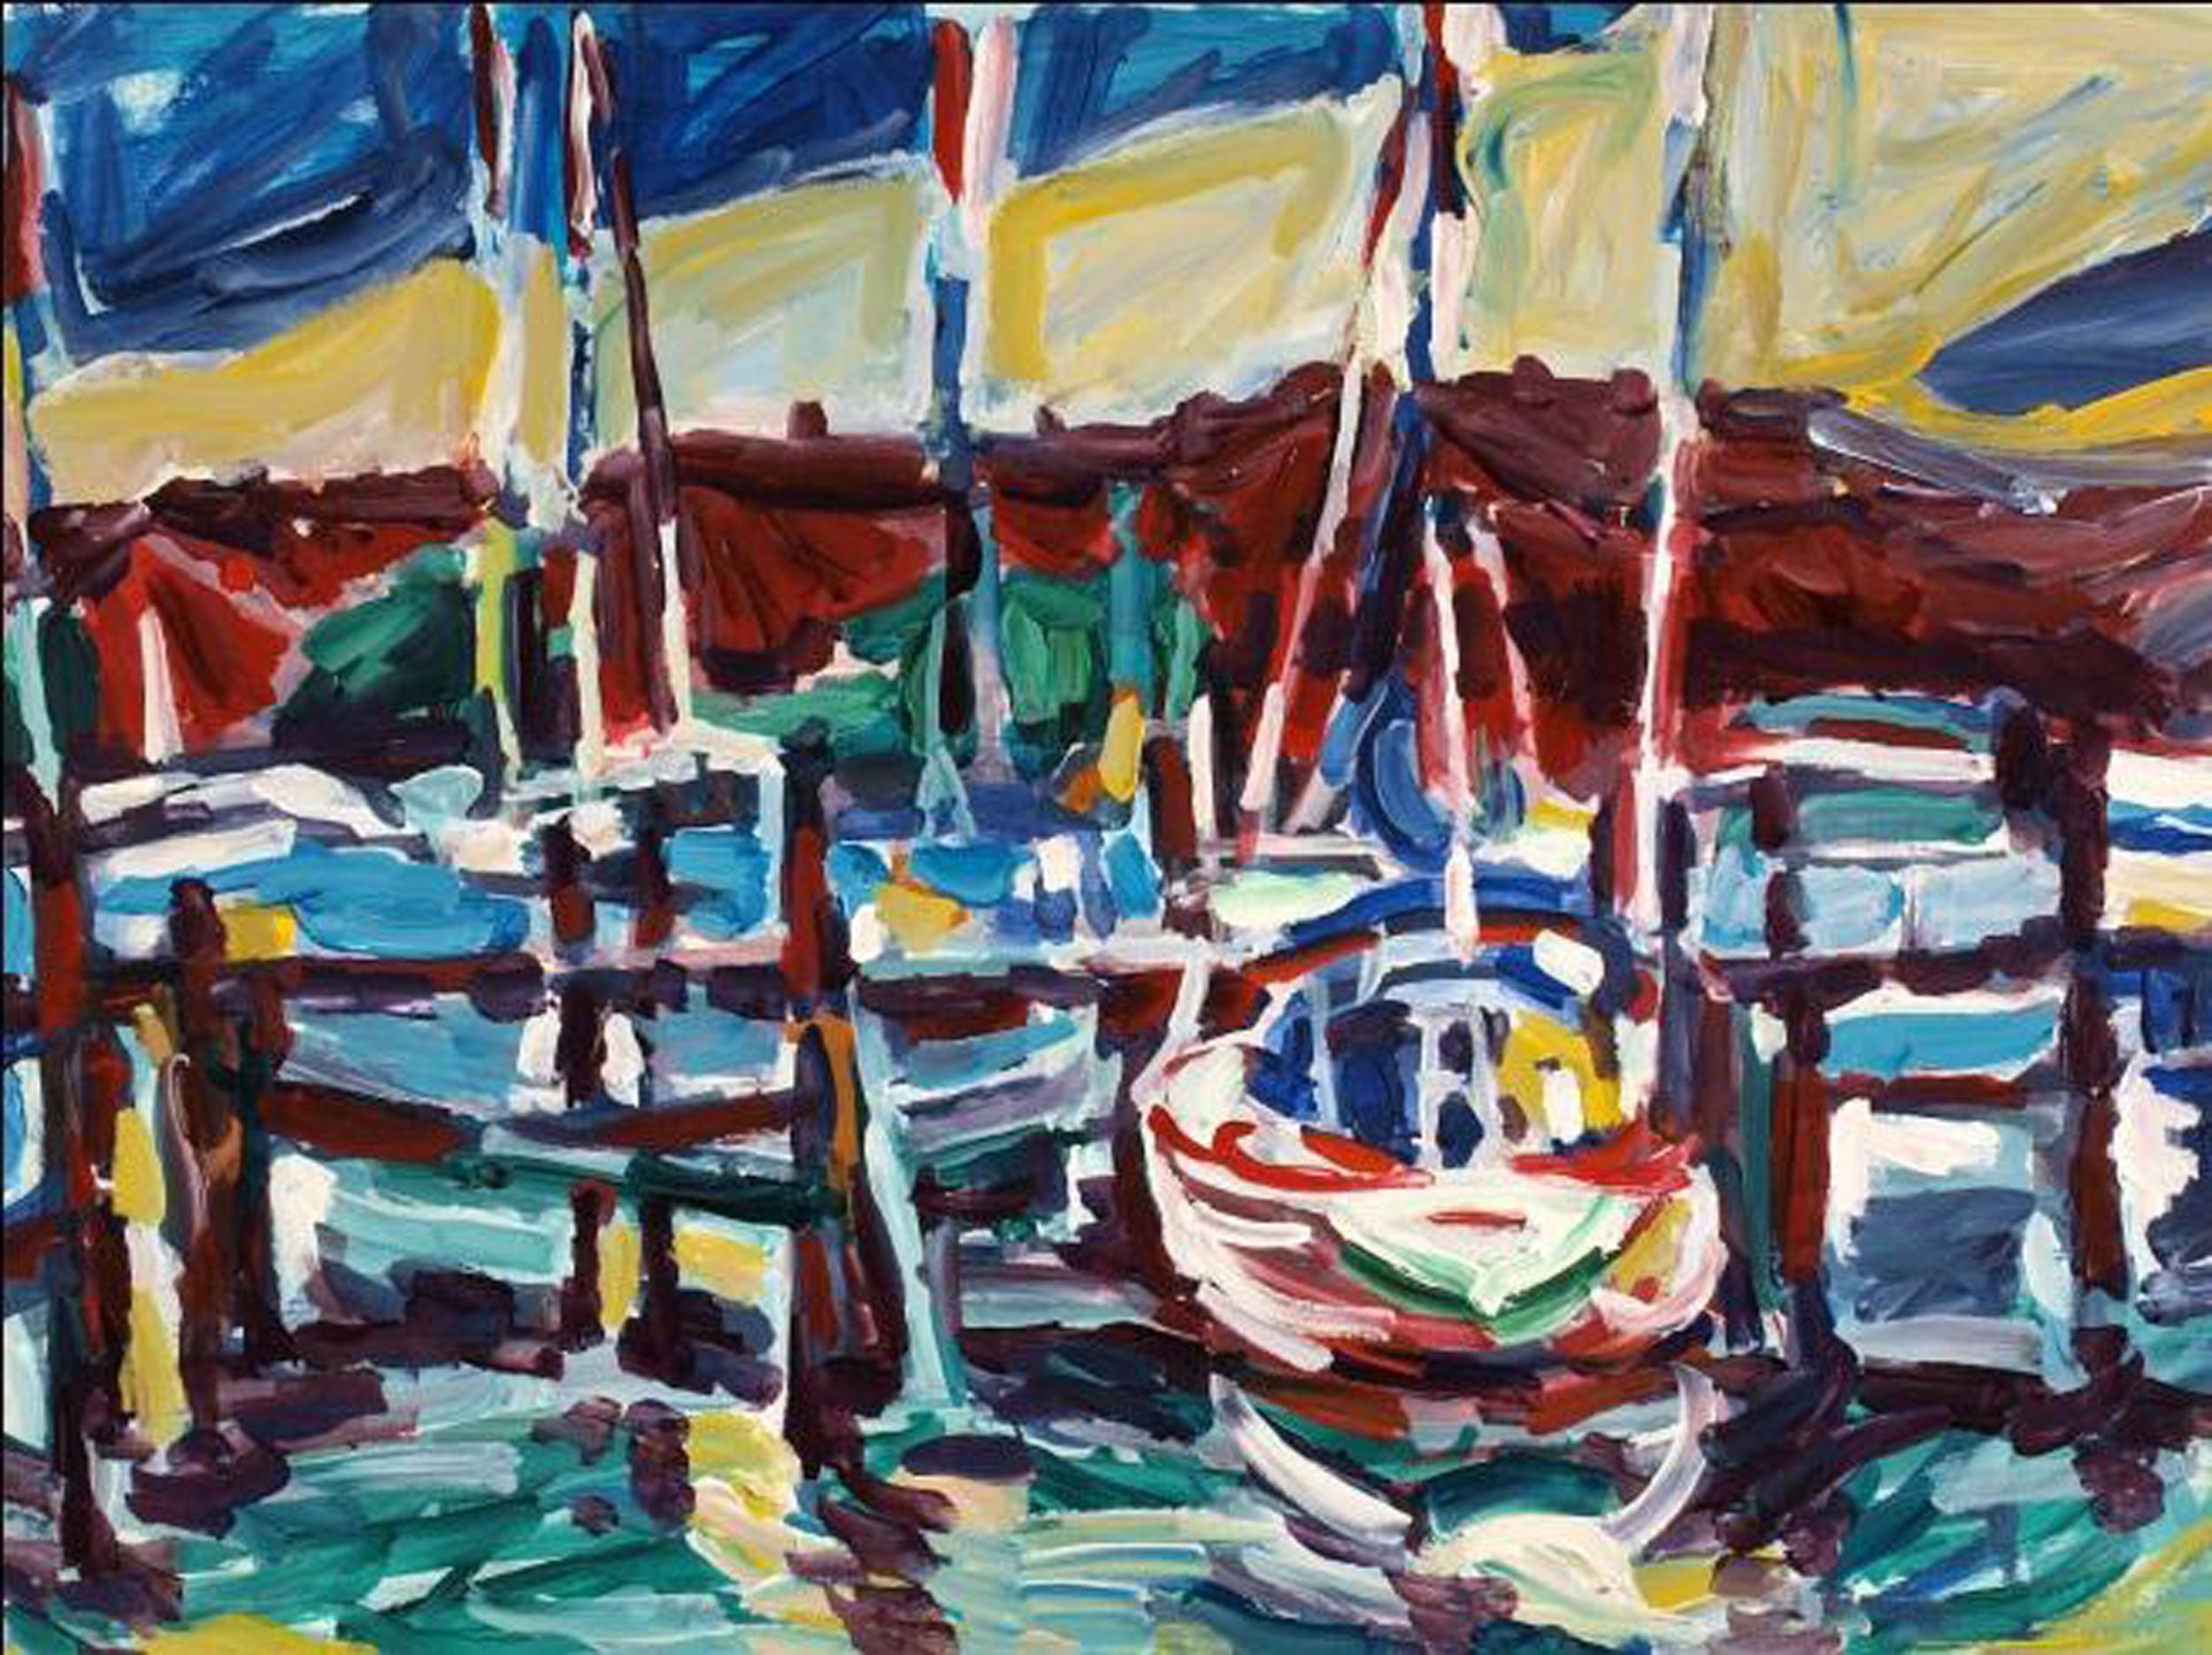 Alfred Sandford, Boats in the Harbor No. 2, Acrylic Painting